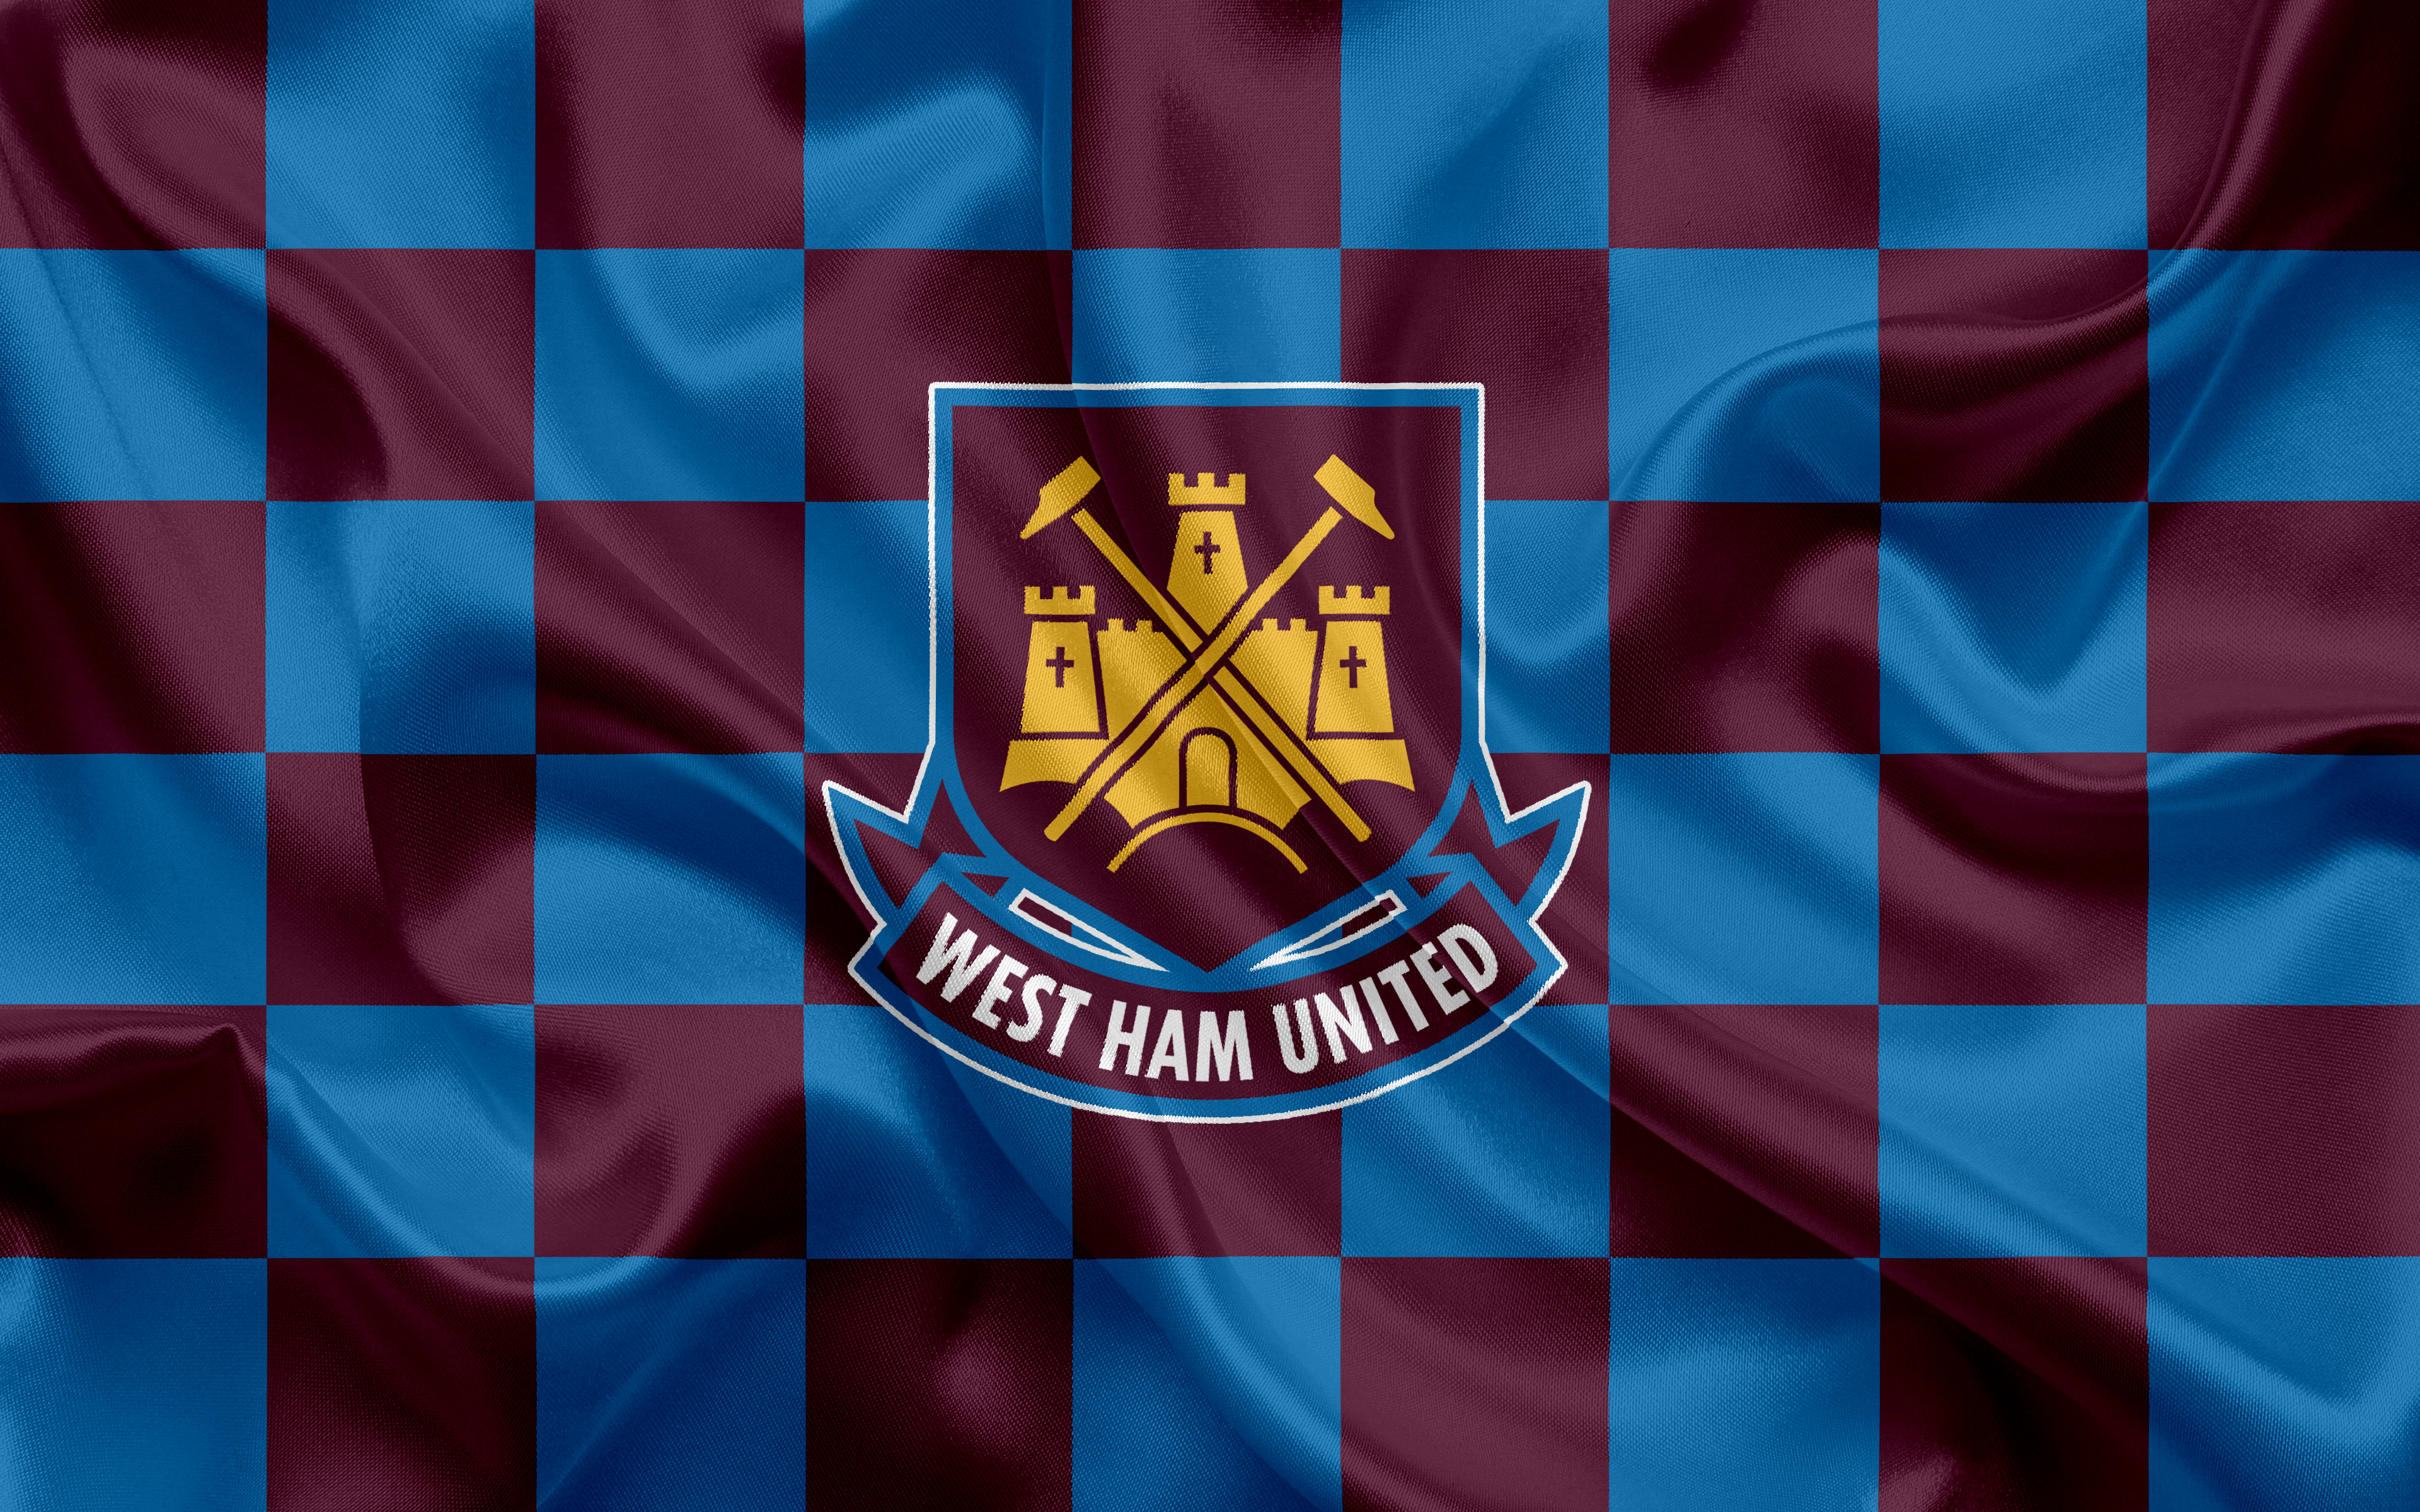 West Ham United F.C. 4k Ultra HD Wallpaper | Background ...